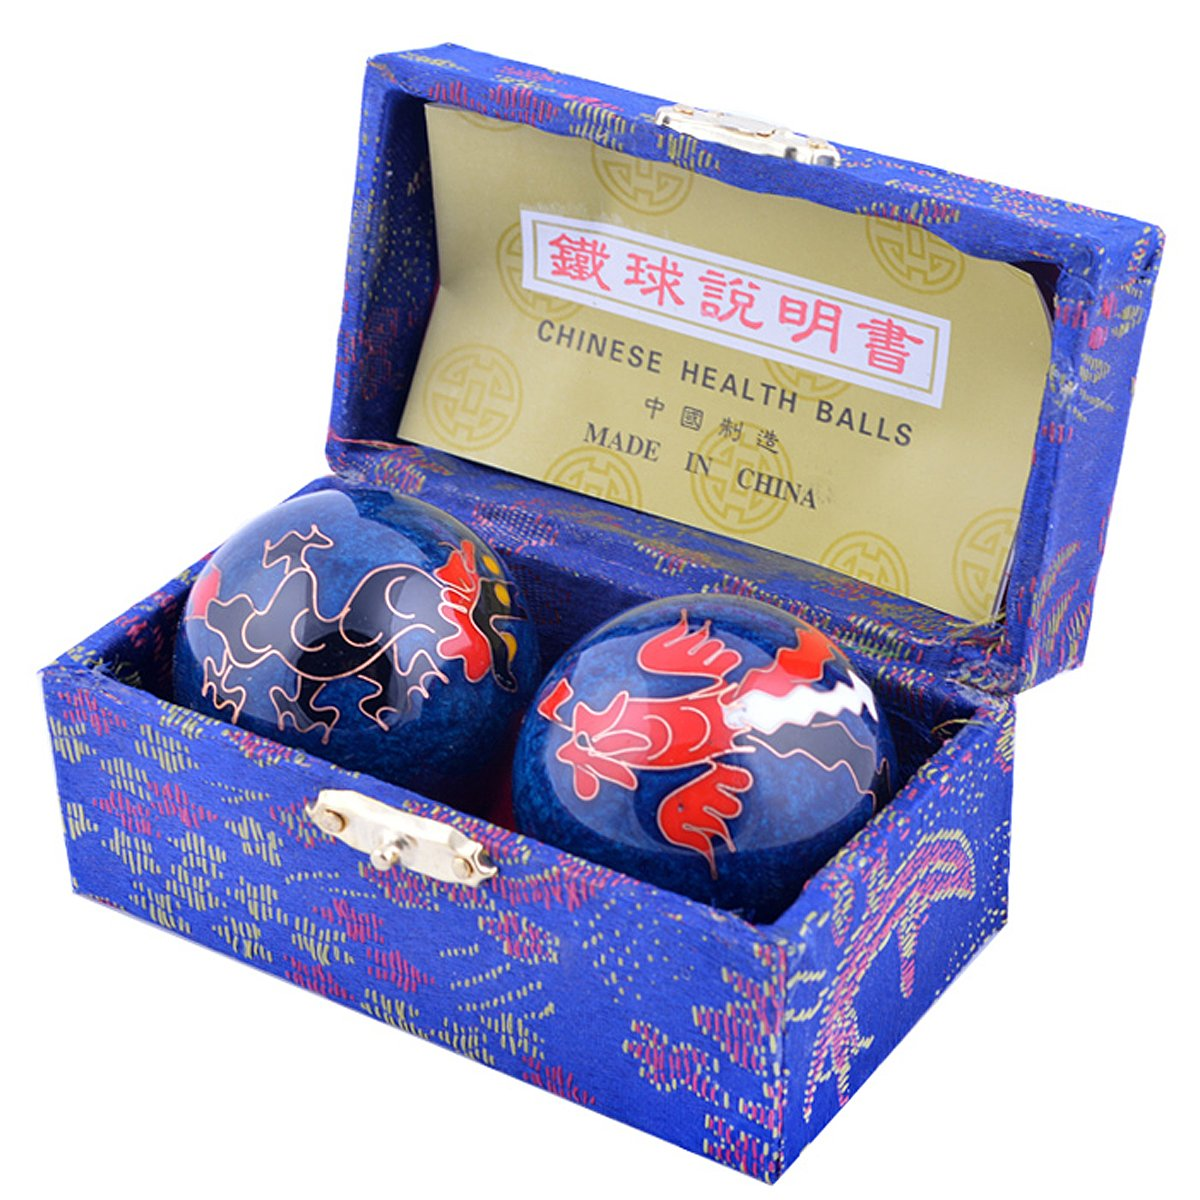 Feng Shui Chinese Health Balls (Blue with Phoenix and Dragon)